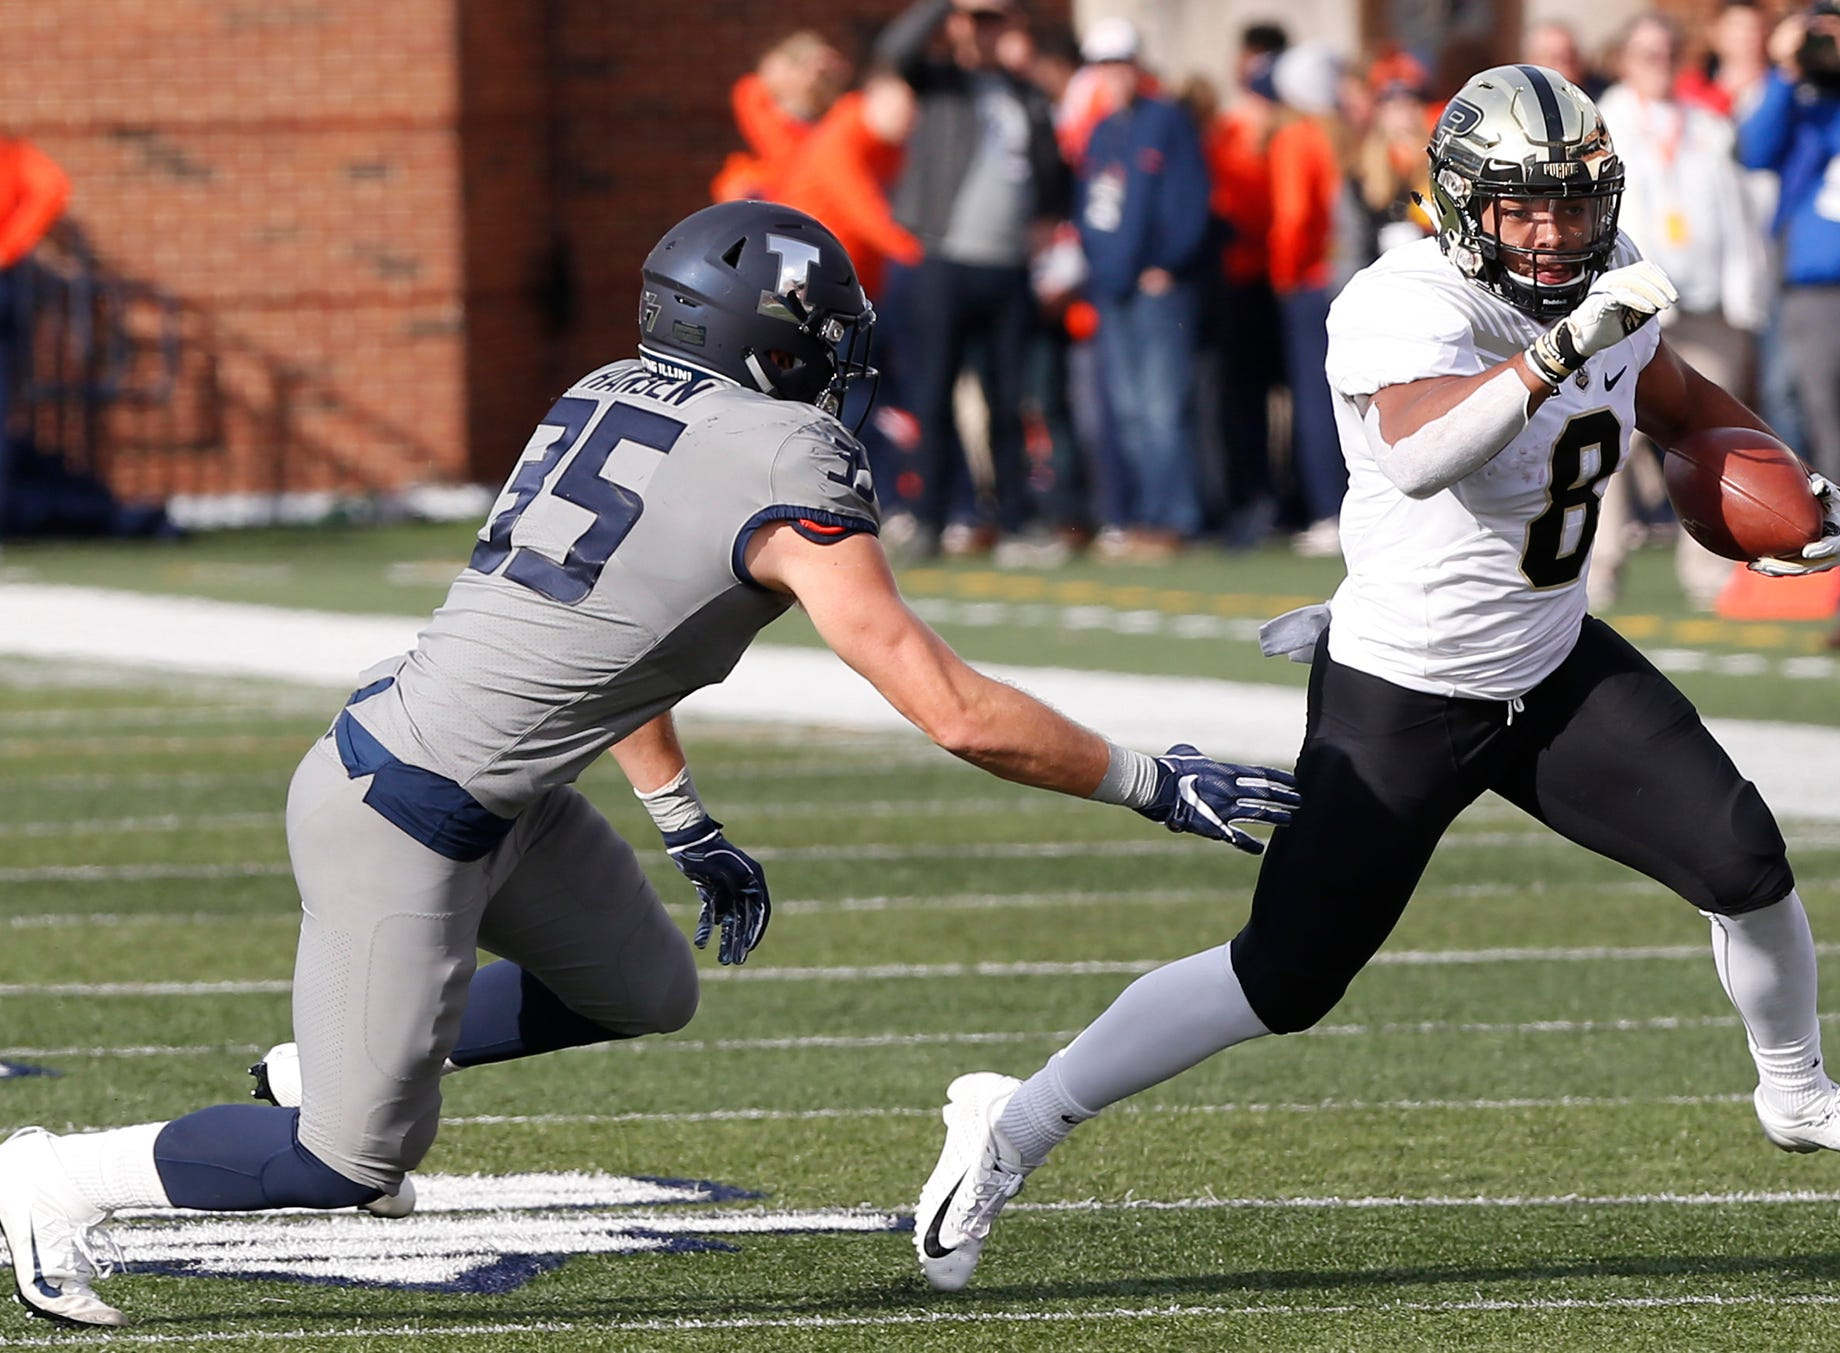 Markell Jones of Purdue works to get around Jake Hansen of Illinois in the first half Saturday, October 13, 2018, in Champaign, Illinois. Purdue defeated Illinois 46-7.